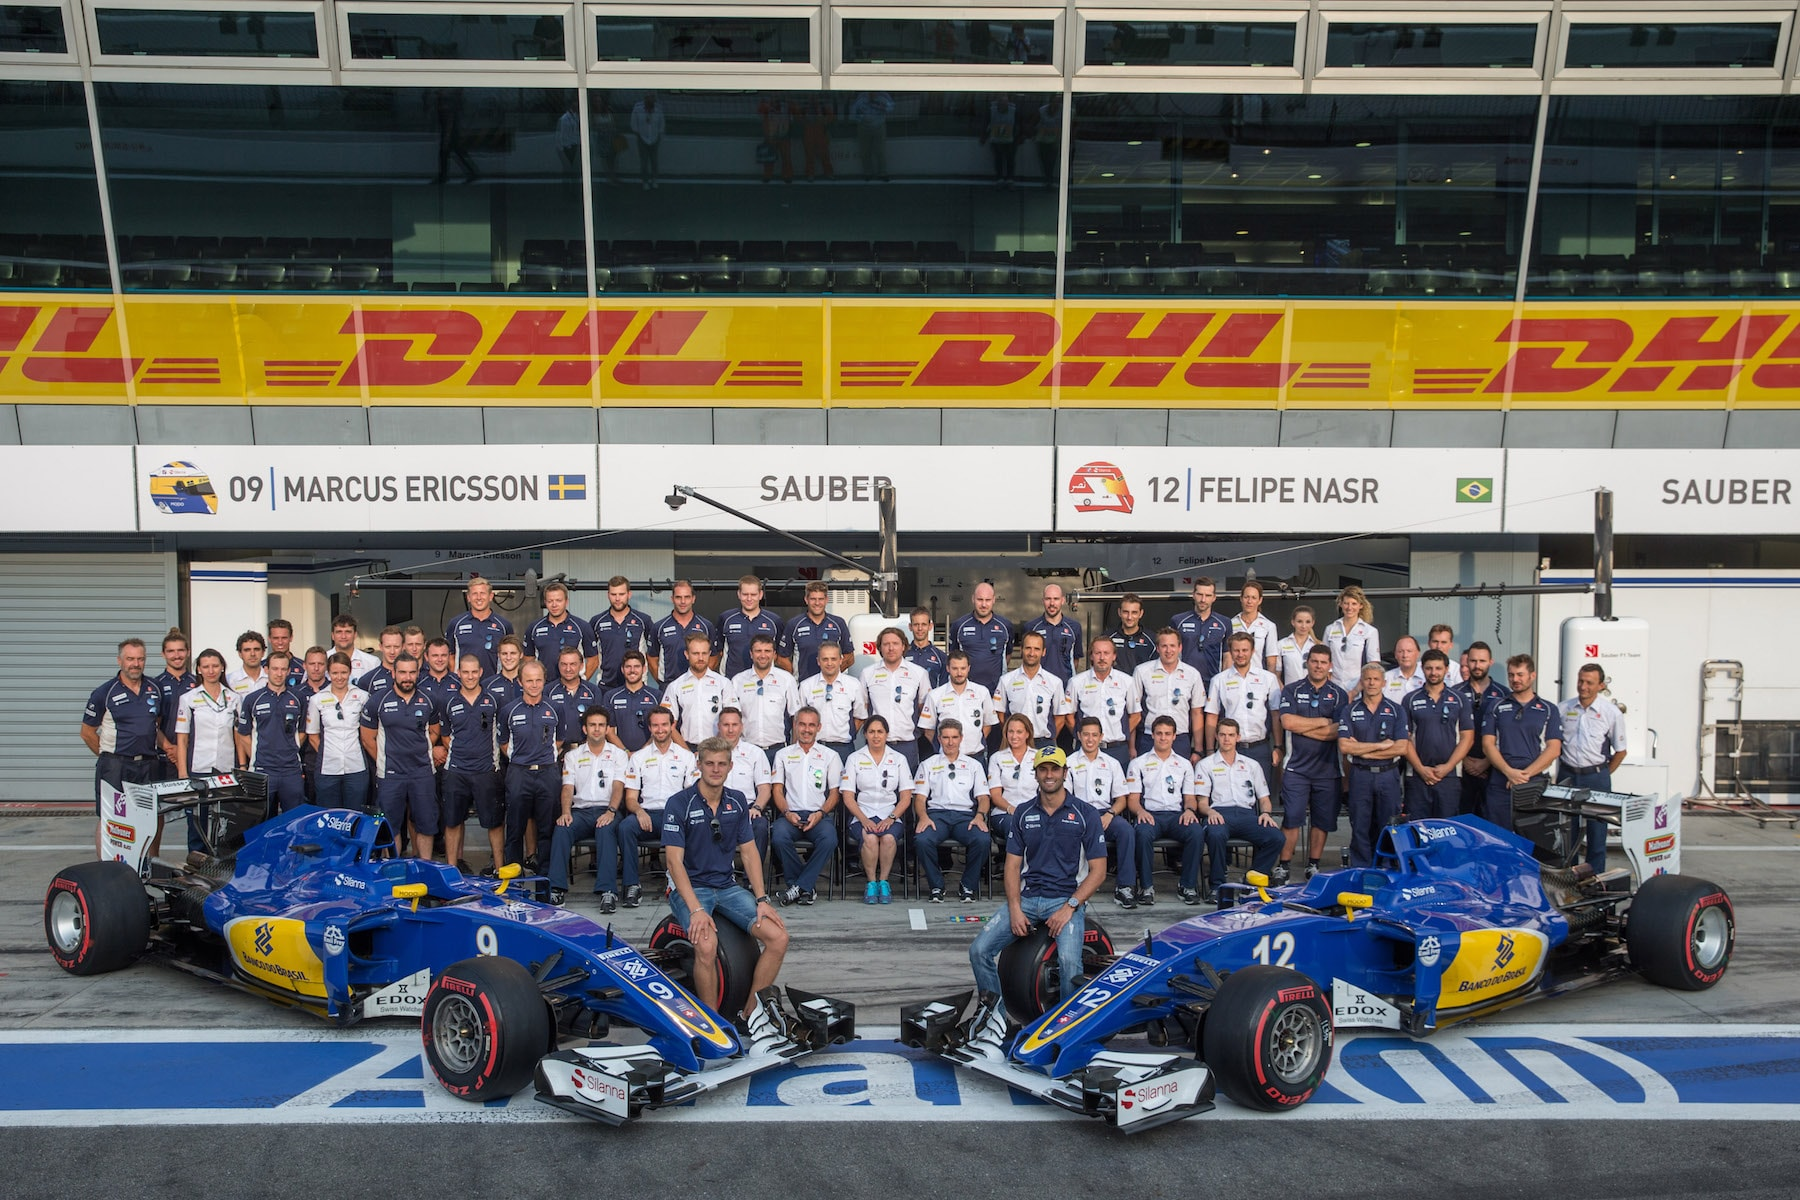 Salracing - Sauber F1 Team family picture